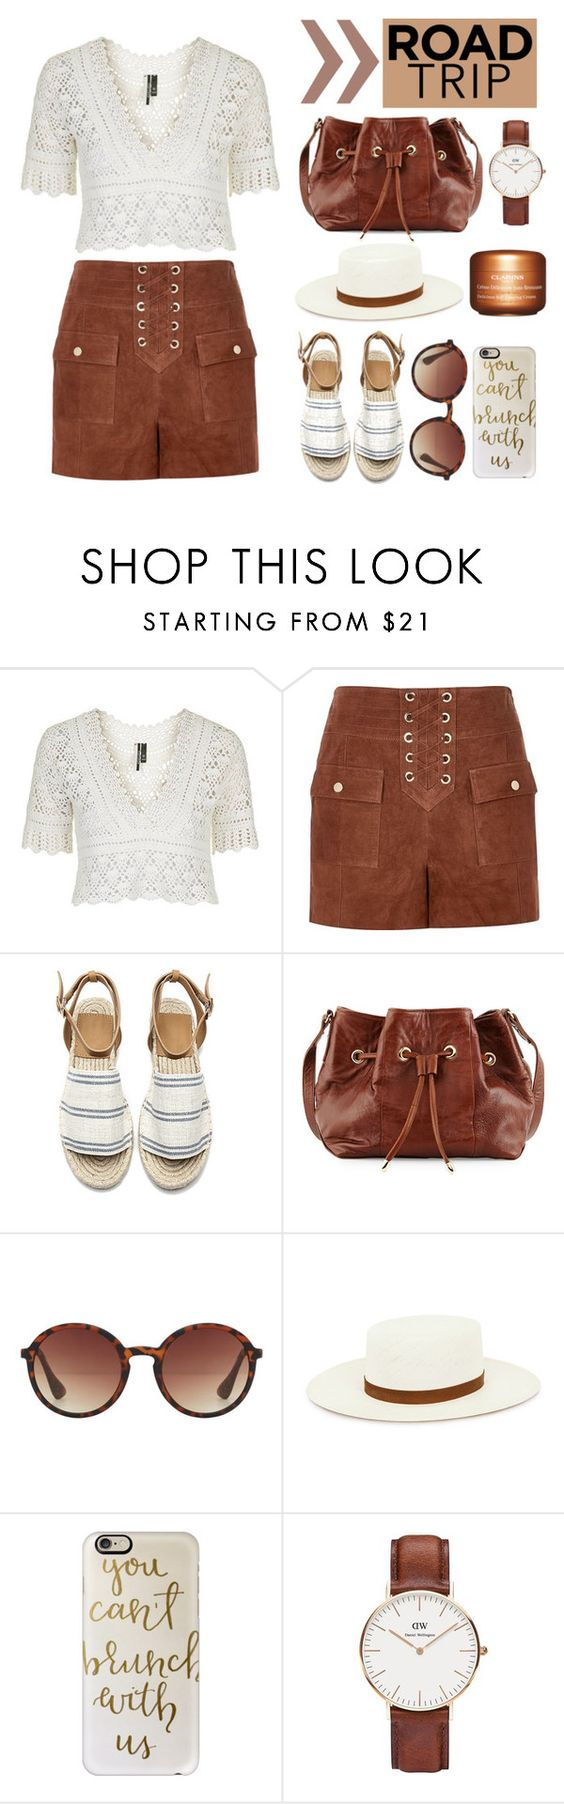 """""""#008: road trip"""" by selenawil ❤ liked on Polyvore featuring Topshop, River Island, Lauren Merkin, MANGO, Janessa Leone, Casetify, Daniel Wellington and Clarins"""